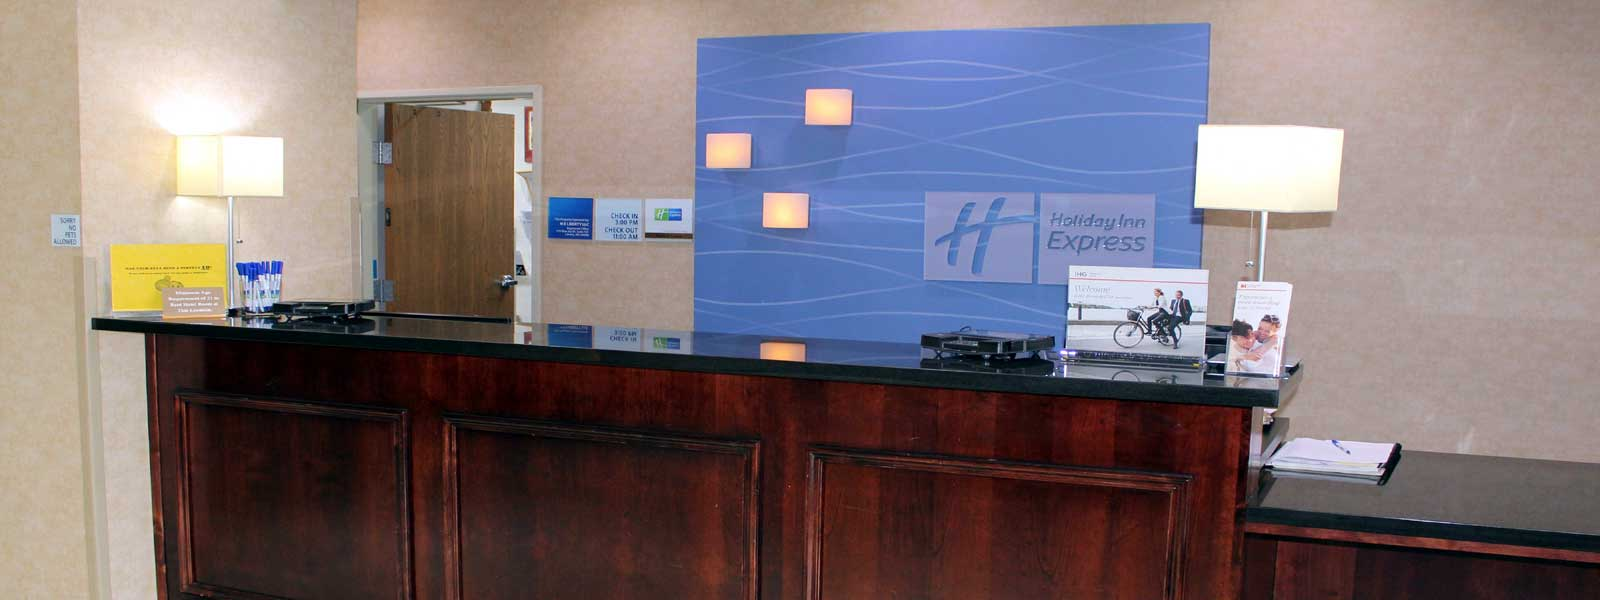 Discount Budget Cheap Affordable Hotels Motels Holiday Inn Express & Suites Liberty